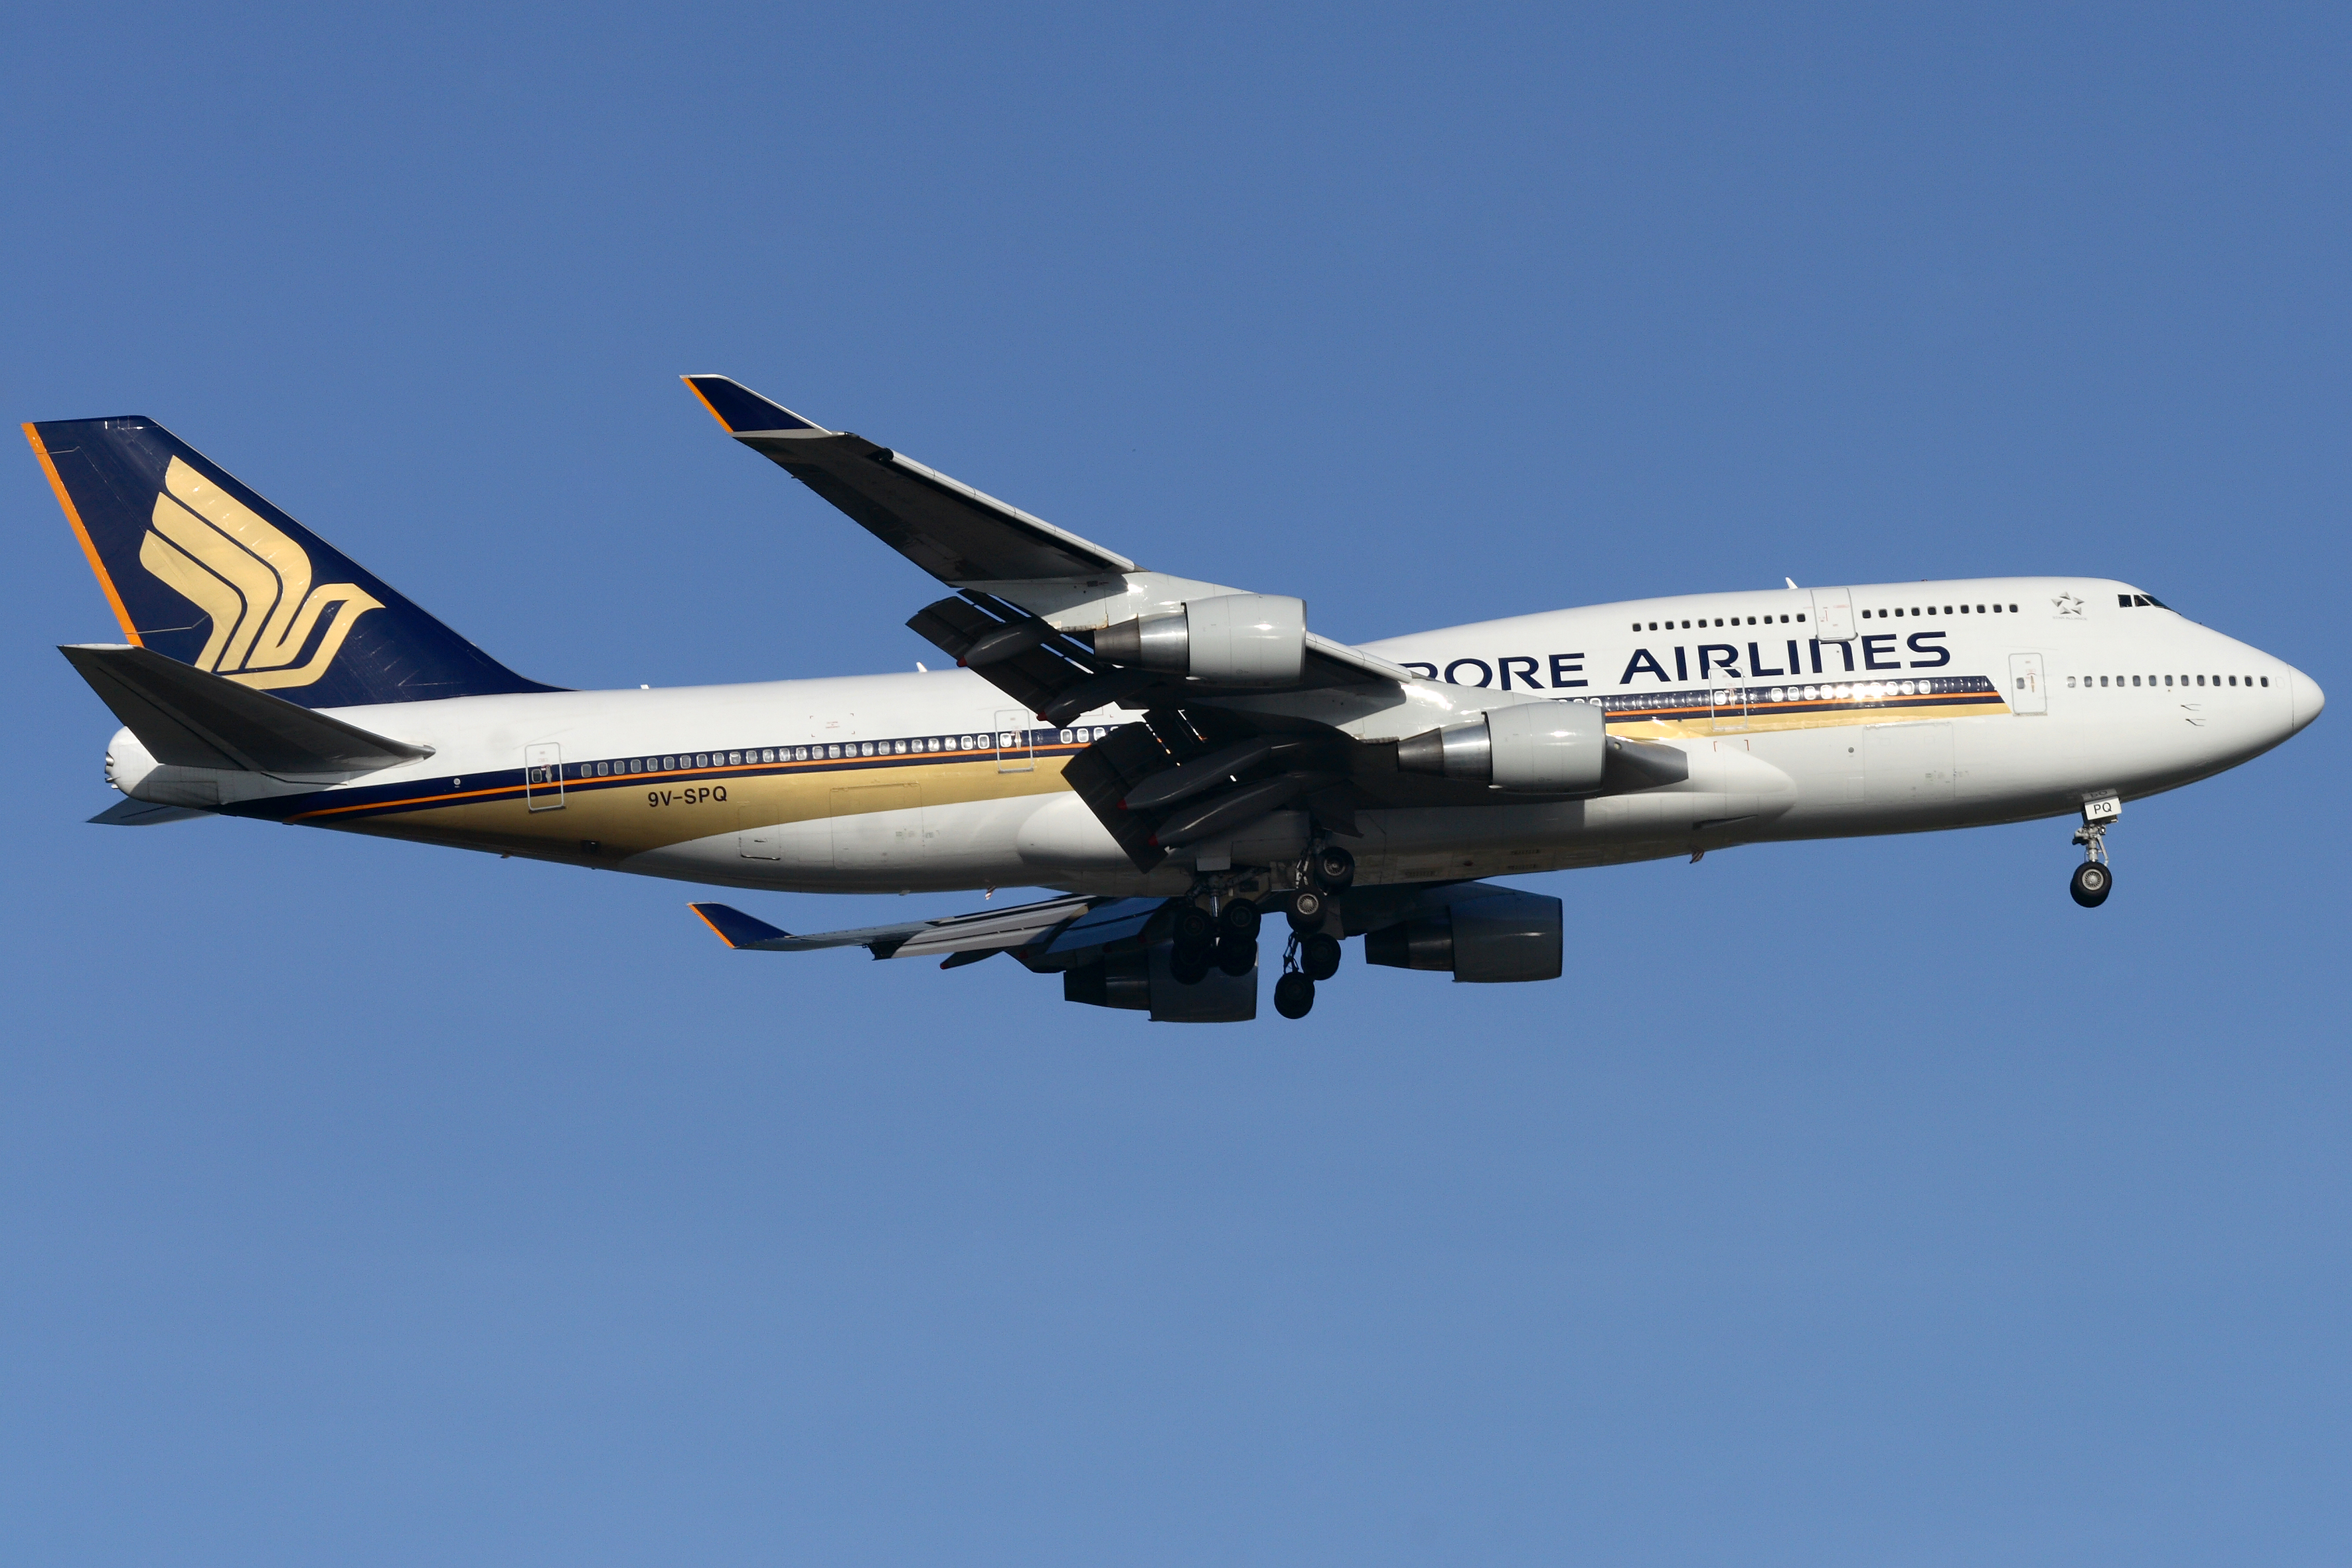 The air traffic between Singapore and India rose to 4.76 million in 2018. Photo courtesy: Singapore Airlines